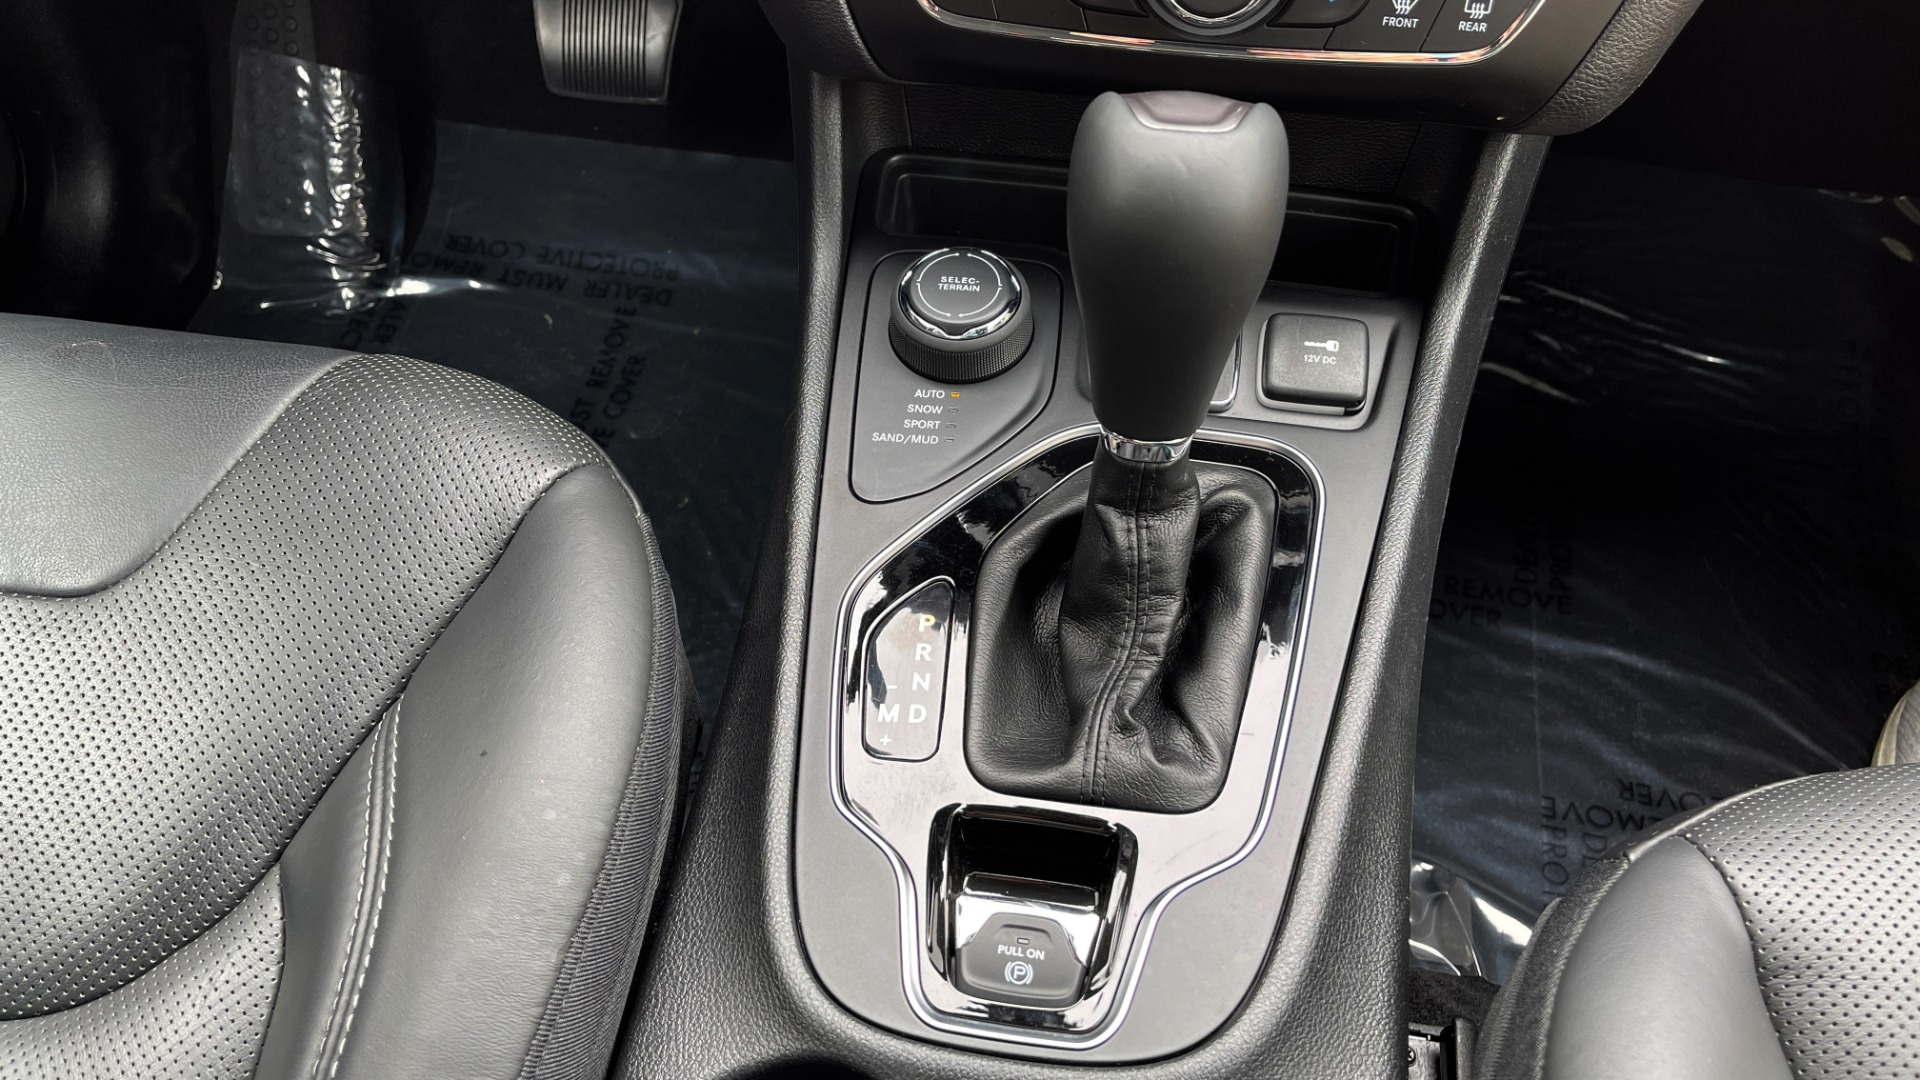 Used 2019 Jeep CHEROKEE LIMITED 4X4 / KEYLESS-GO / BLIND SPOT AND CROSS PATH / REMOTE START / REARV for sale $26,995 at Formula Imports in Charlotte NC 28227 57